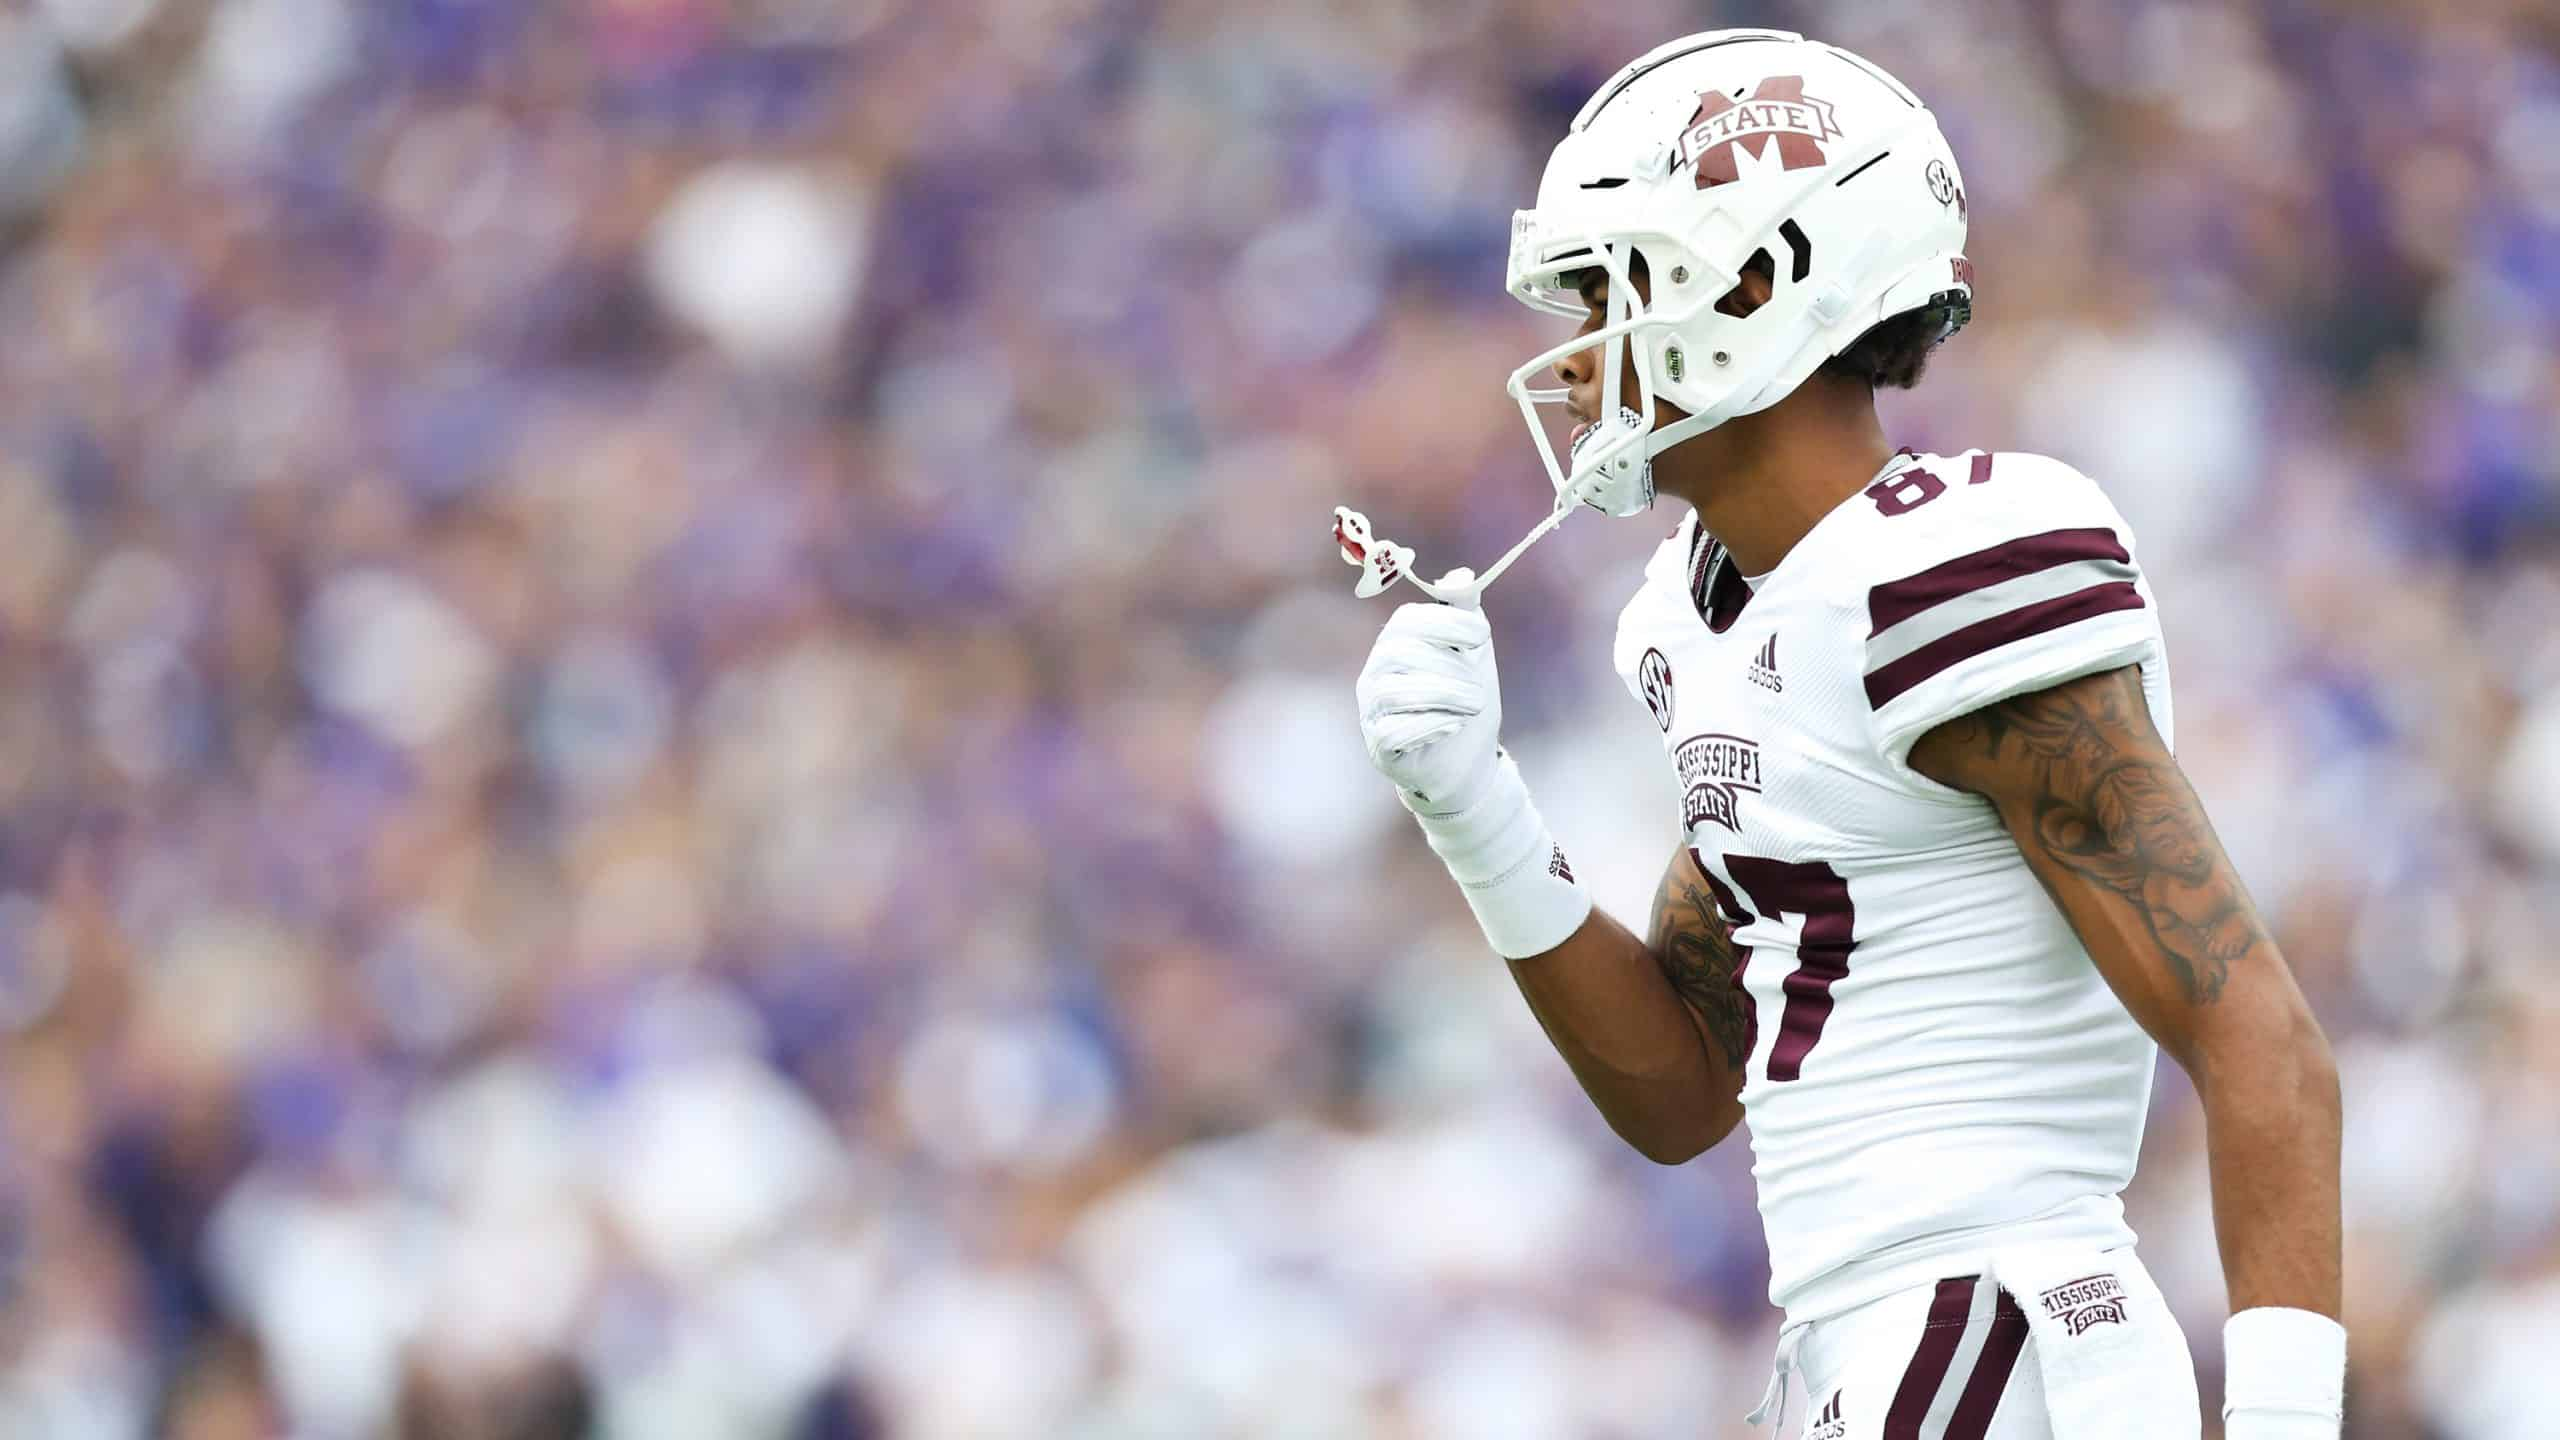 Mississippi State WR Osirus Mitchell set to make the leap in 2020